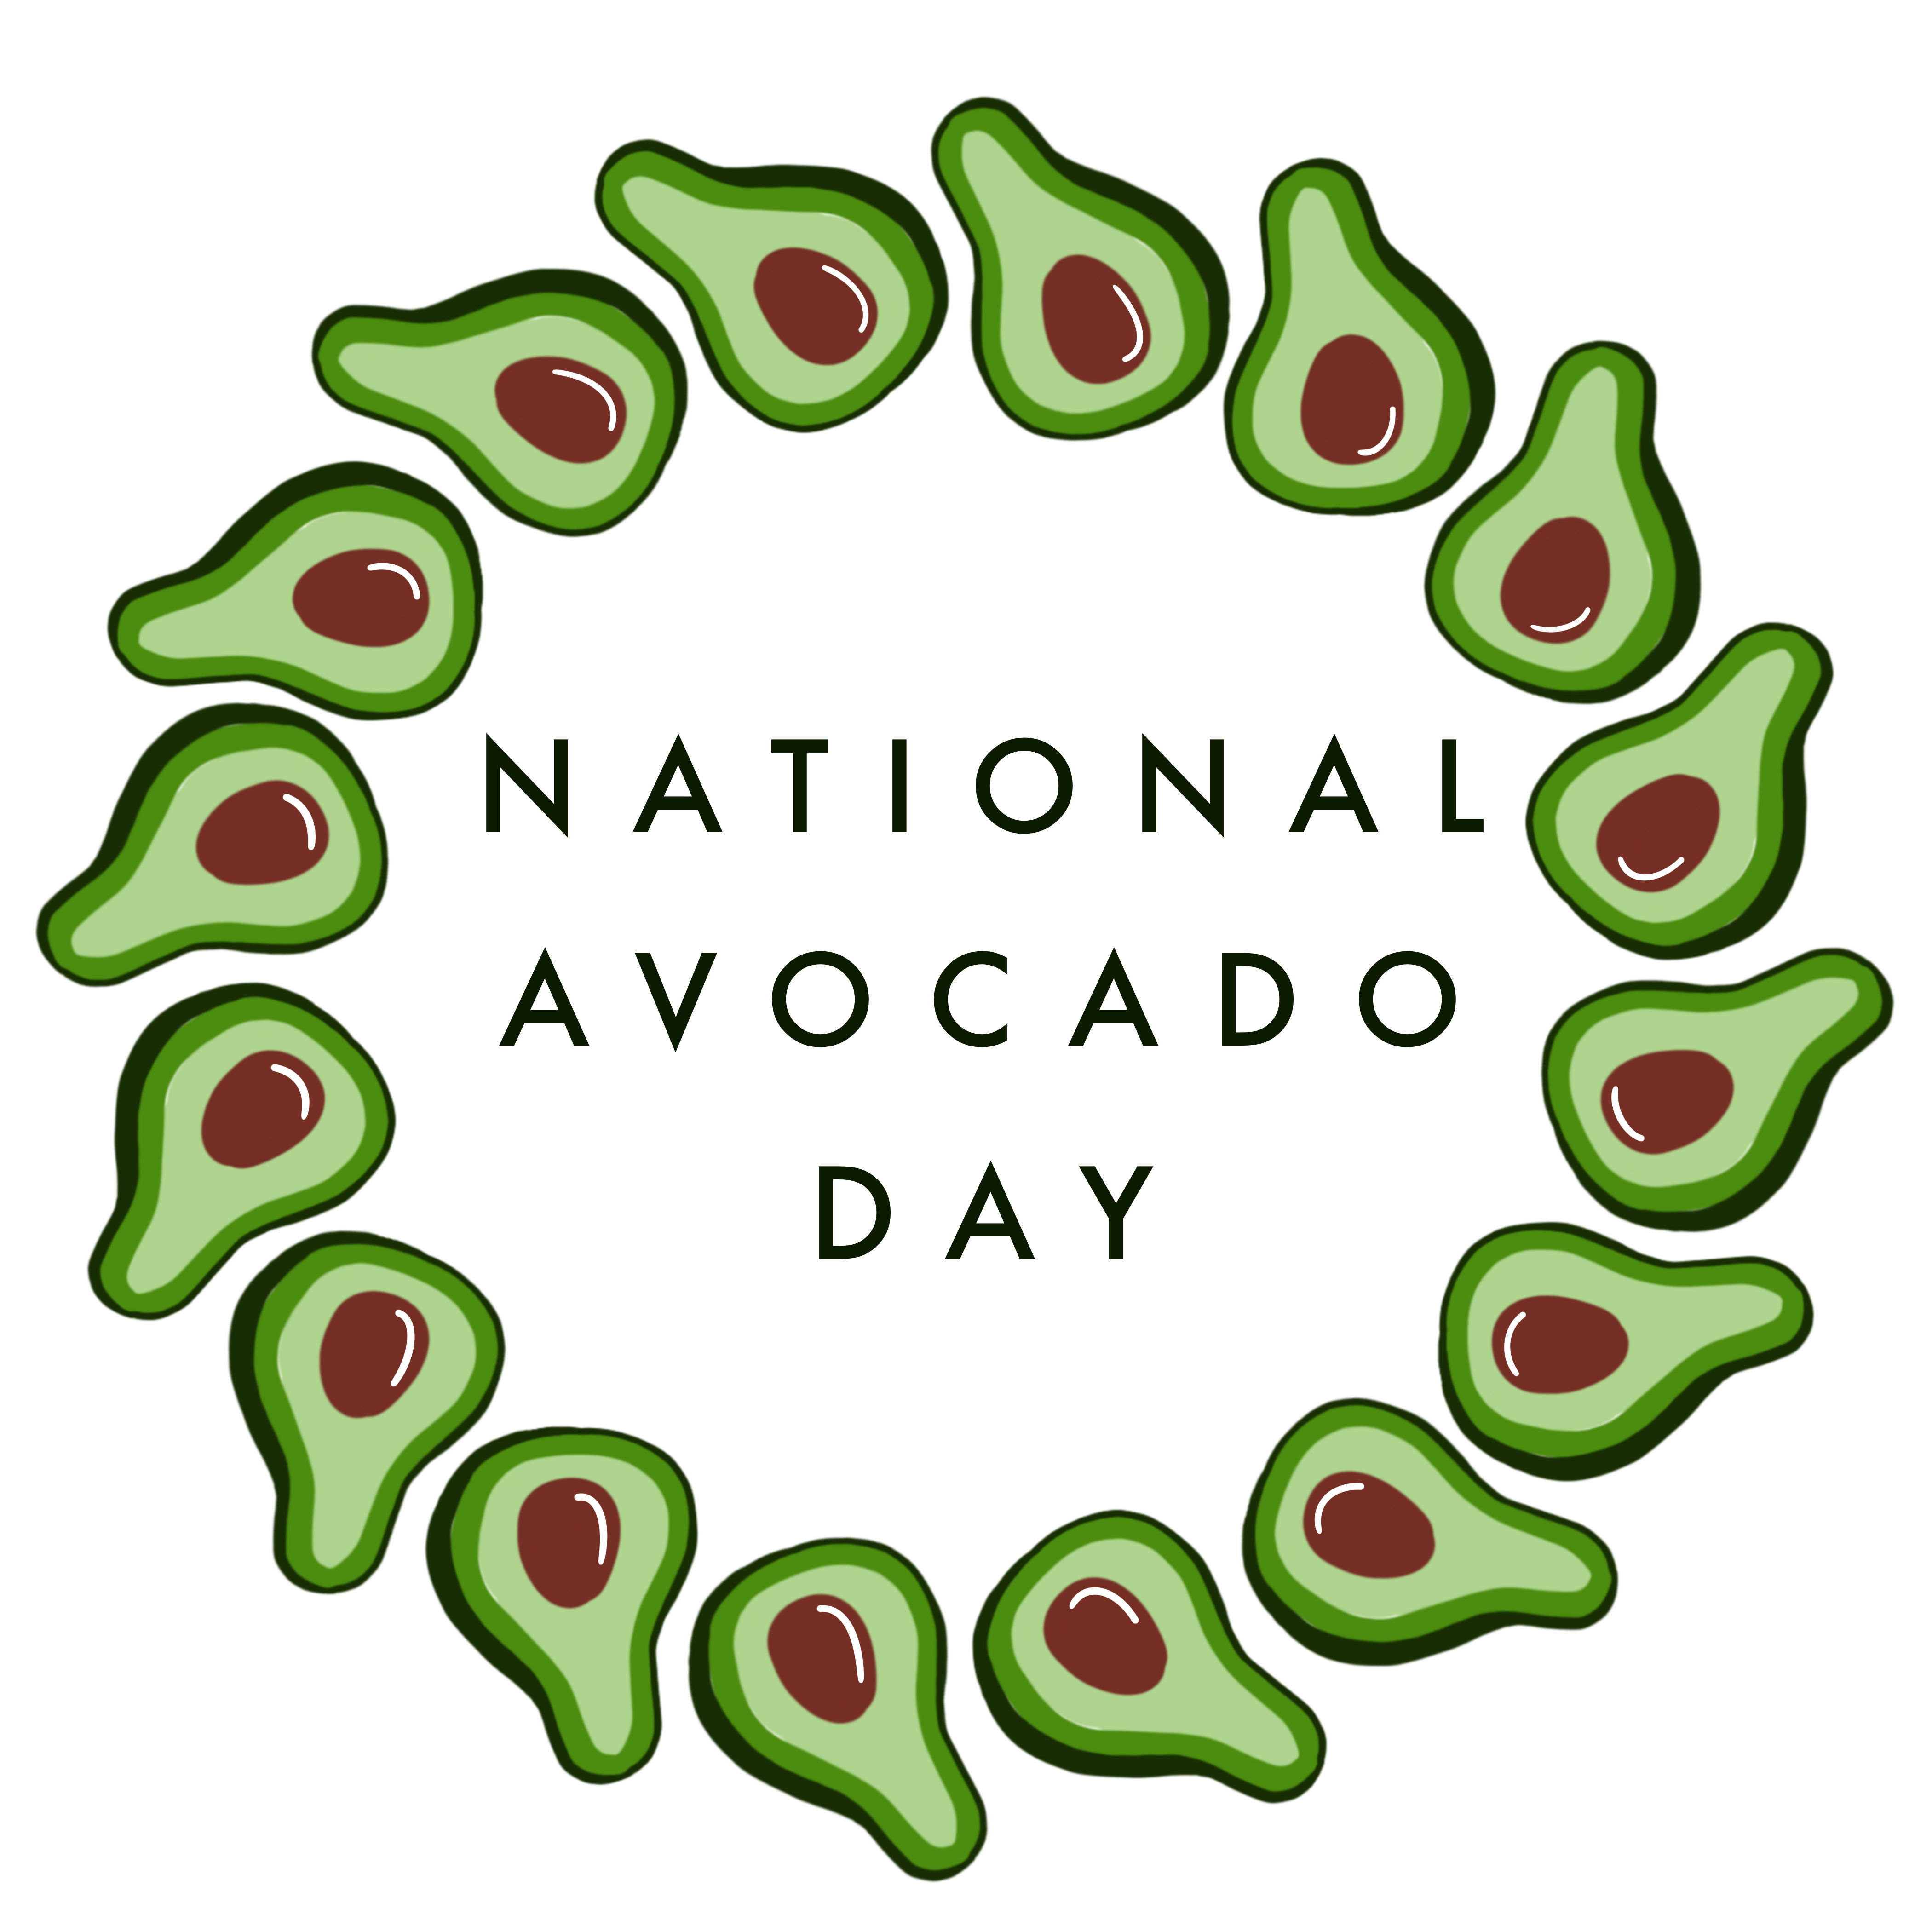 31st of July National Avocado Day Aesthetic iphone wallpaper 4200x4200